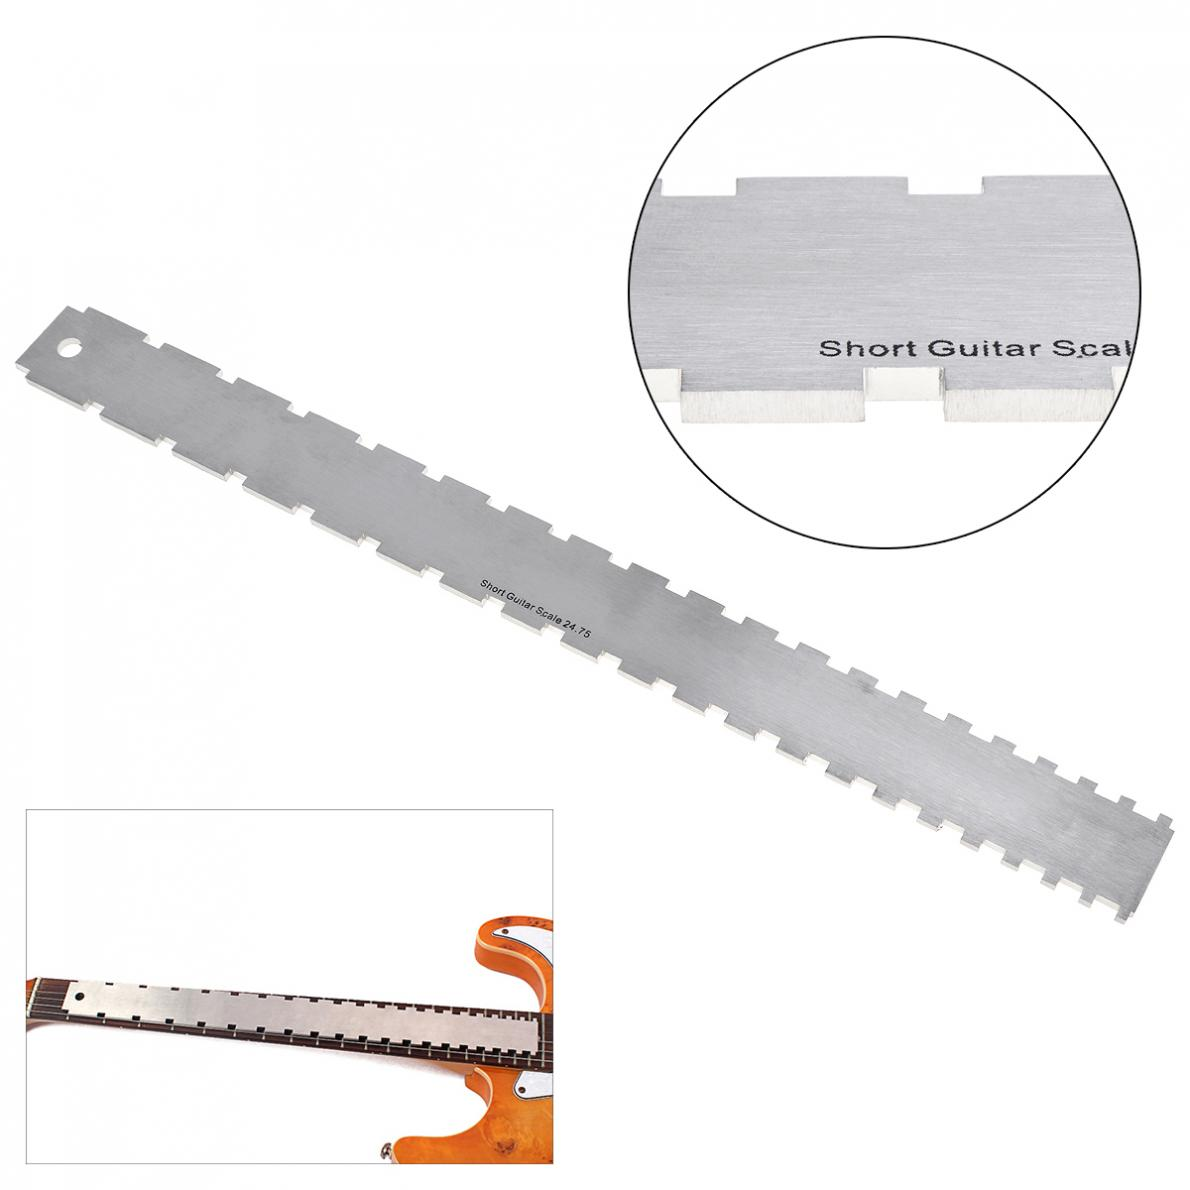 Musical Instruments Honesty Guitar Fingerboard Ruler Silver Stainless Steel Guitar Neck Notched Straight Edge Luthiers Tool Guitar Accessories 1pc Sports & Entertainment